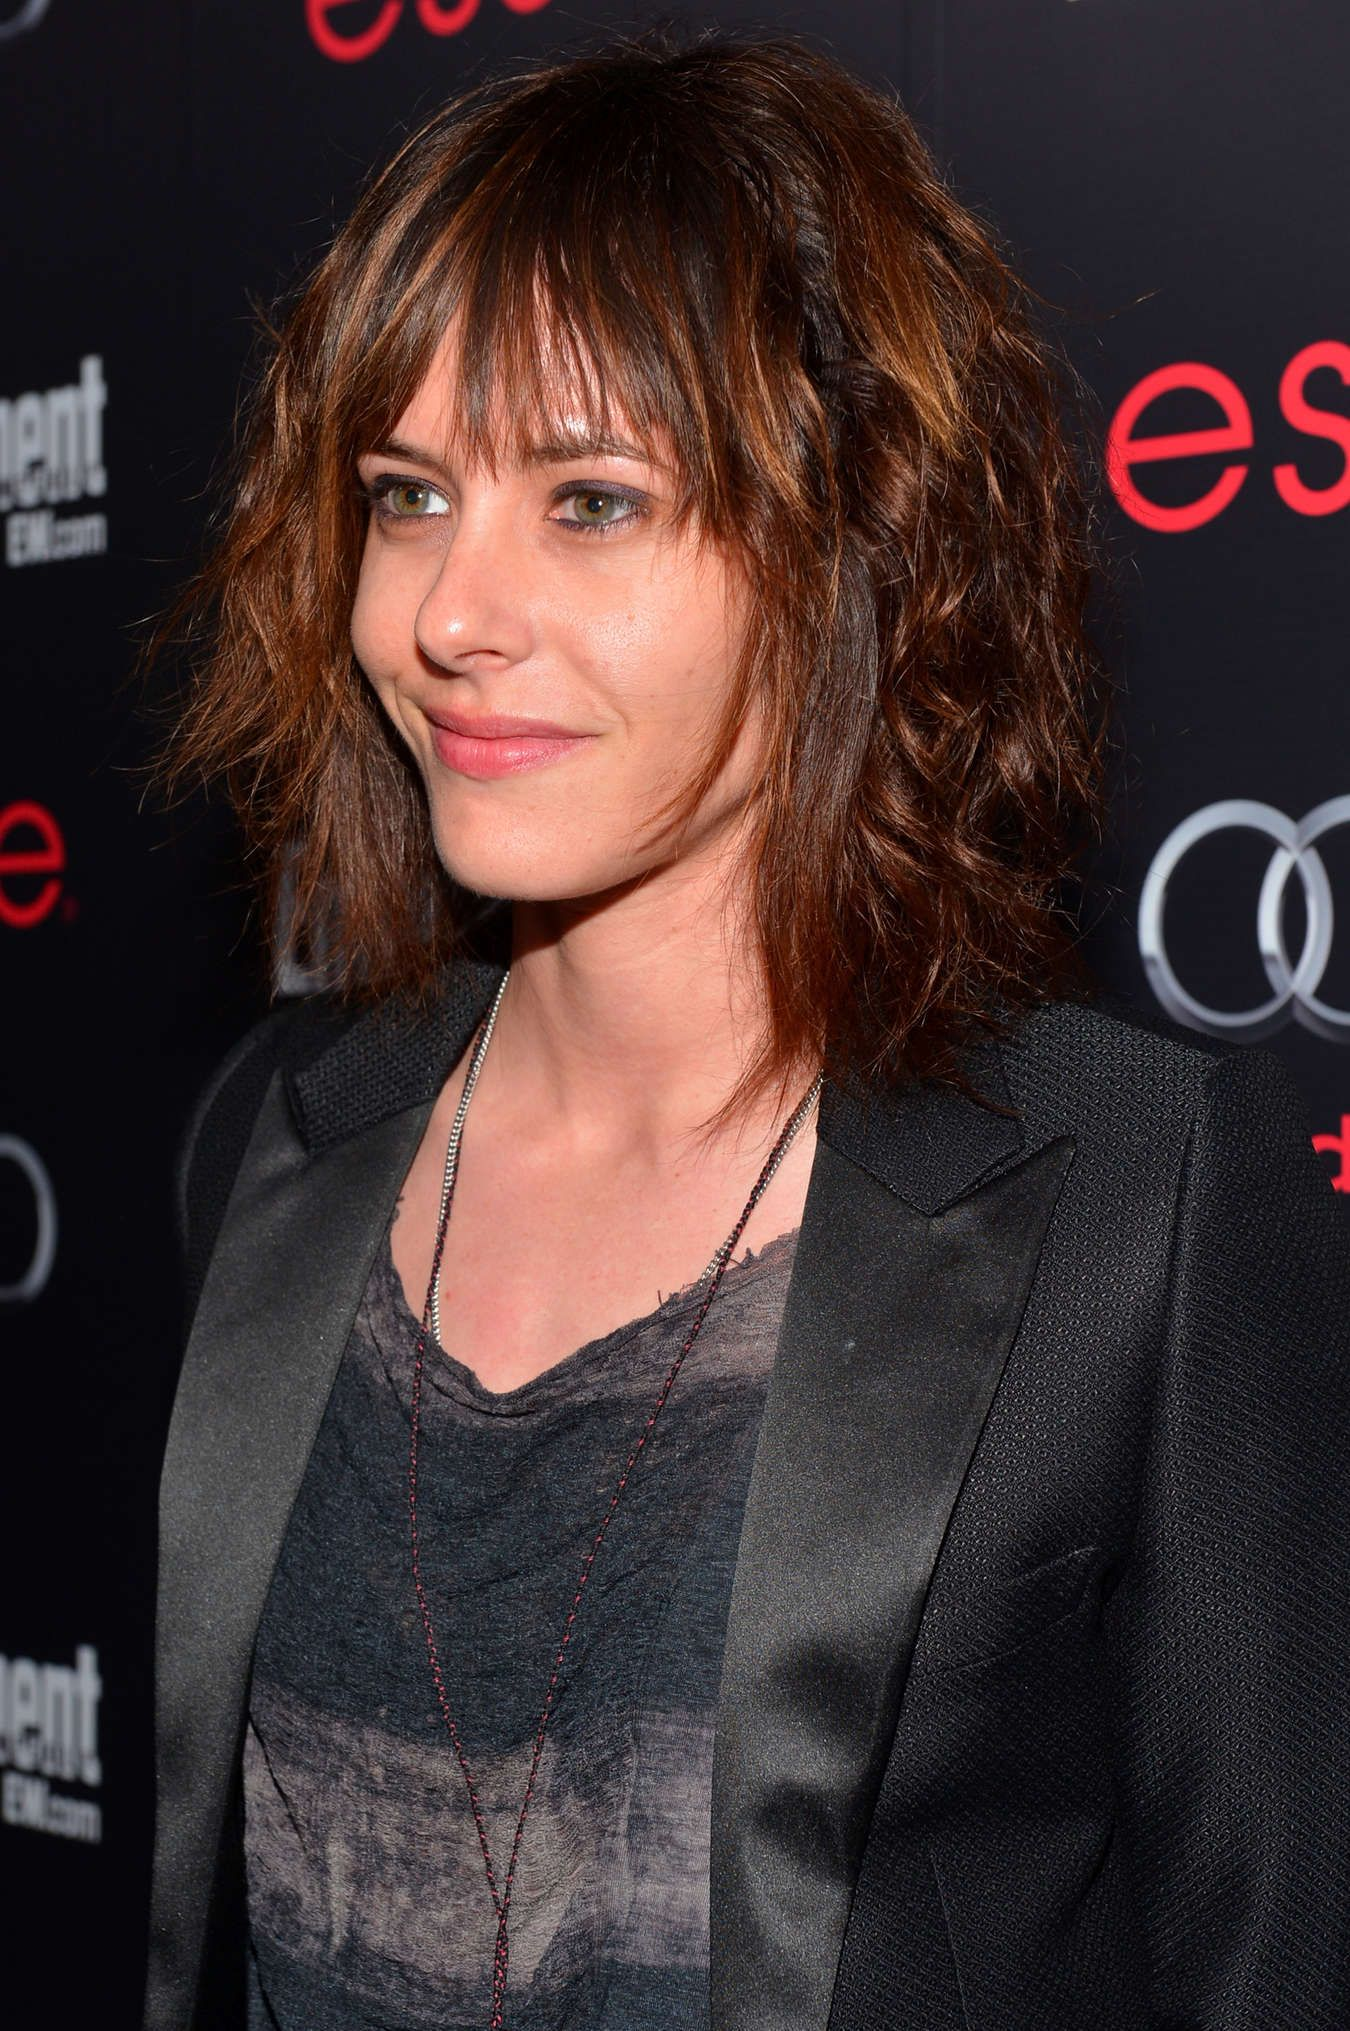 pictures of katherine moennig - pictures of celebrities | hair